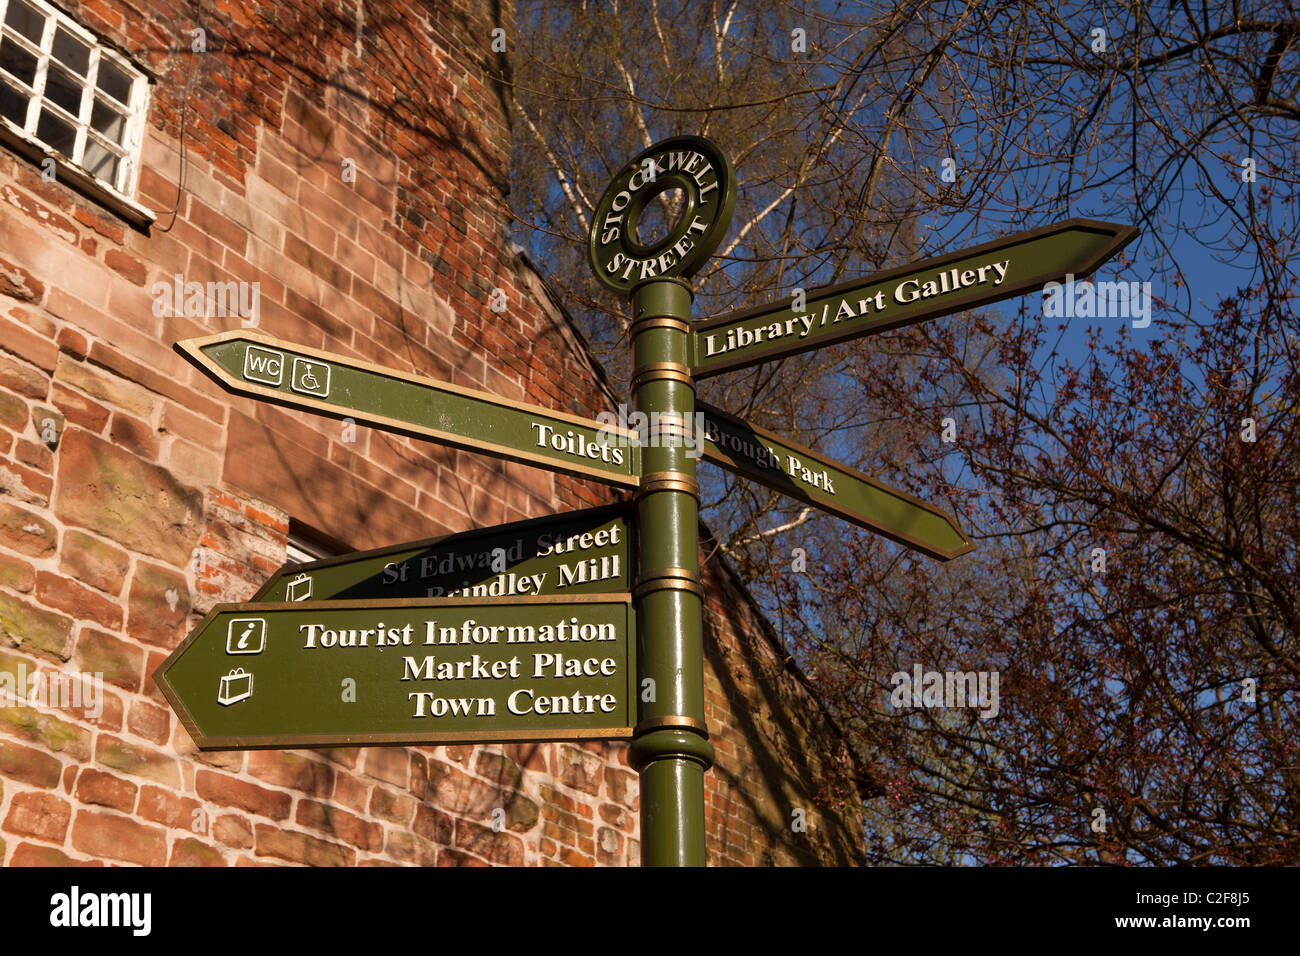 UK, England, Staffordshire, Leek, Stockwell Street, tourist information signpost indicating town centre attractions - Stock Image